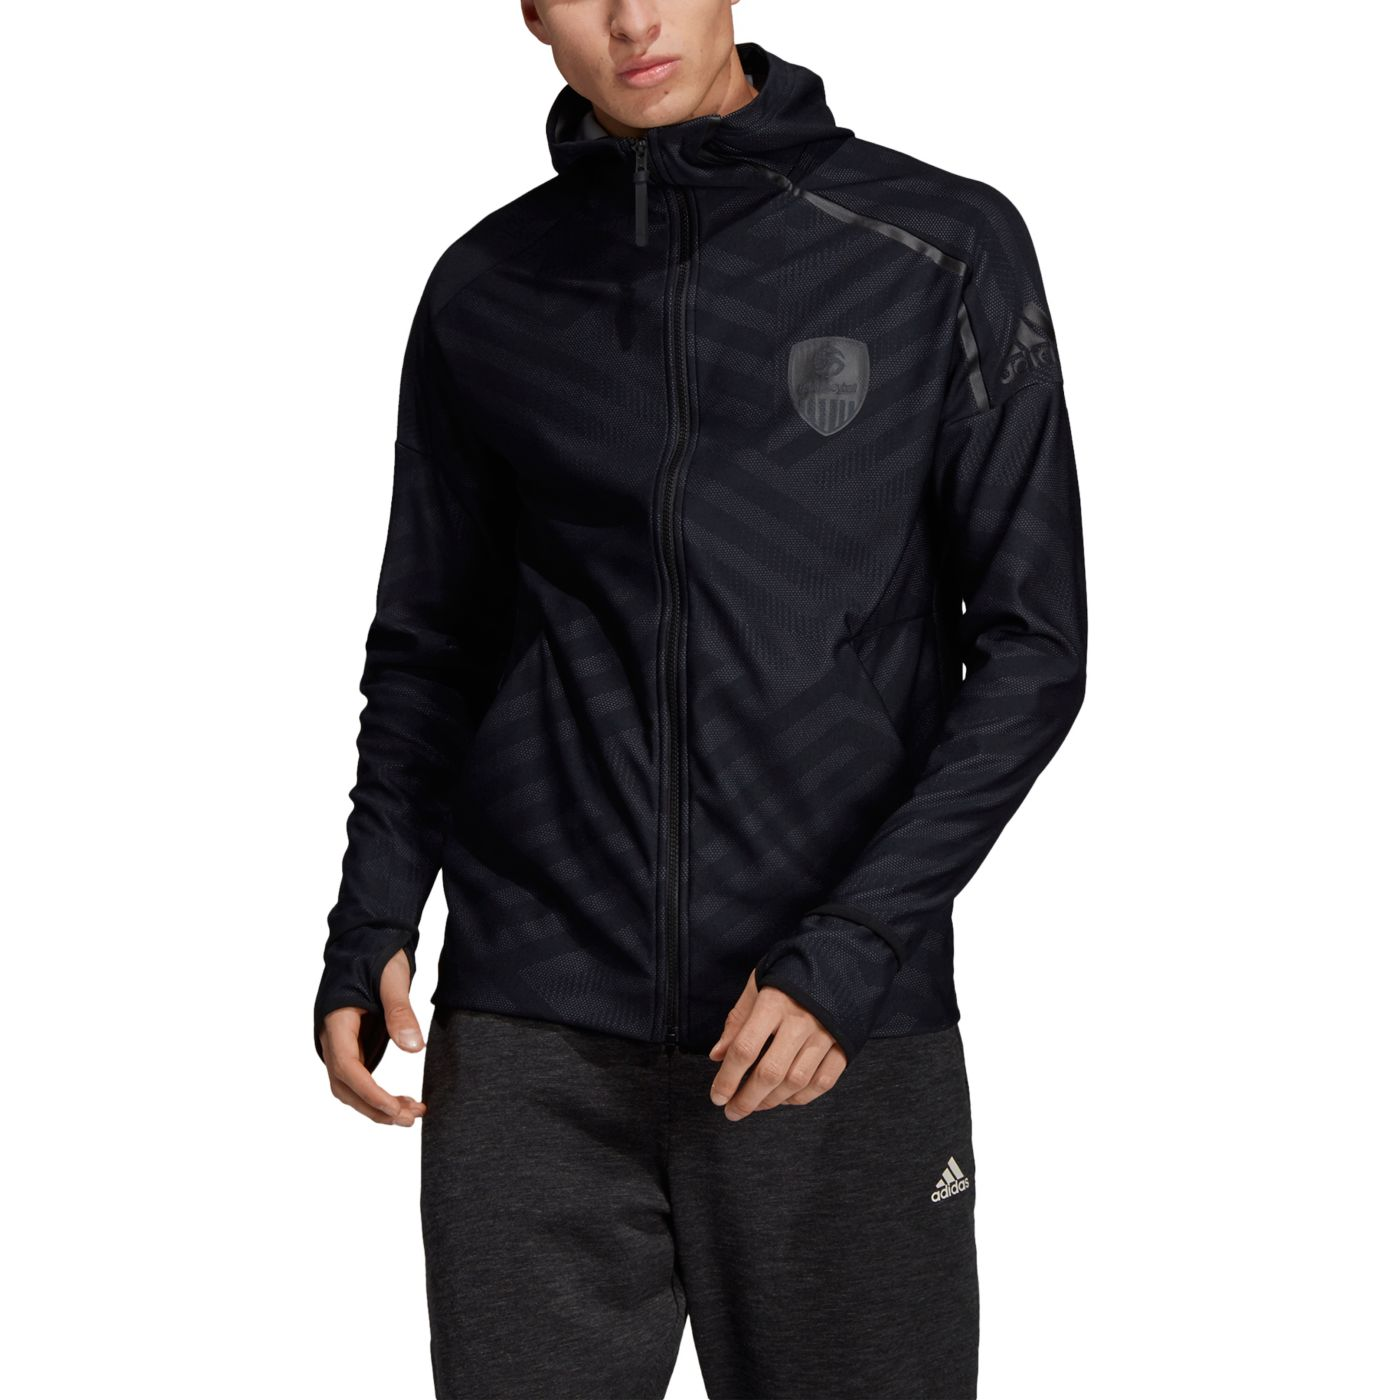 Adidas Men's USA Volleyball ZNE Hoodie